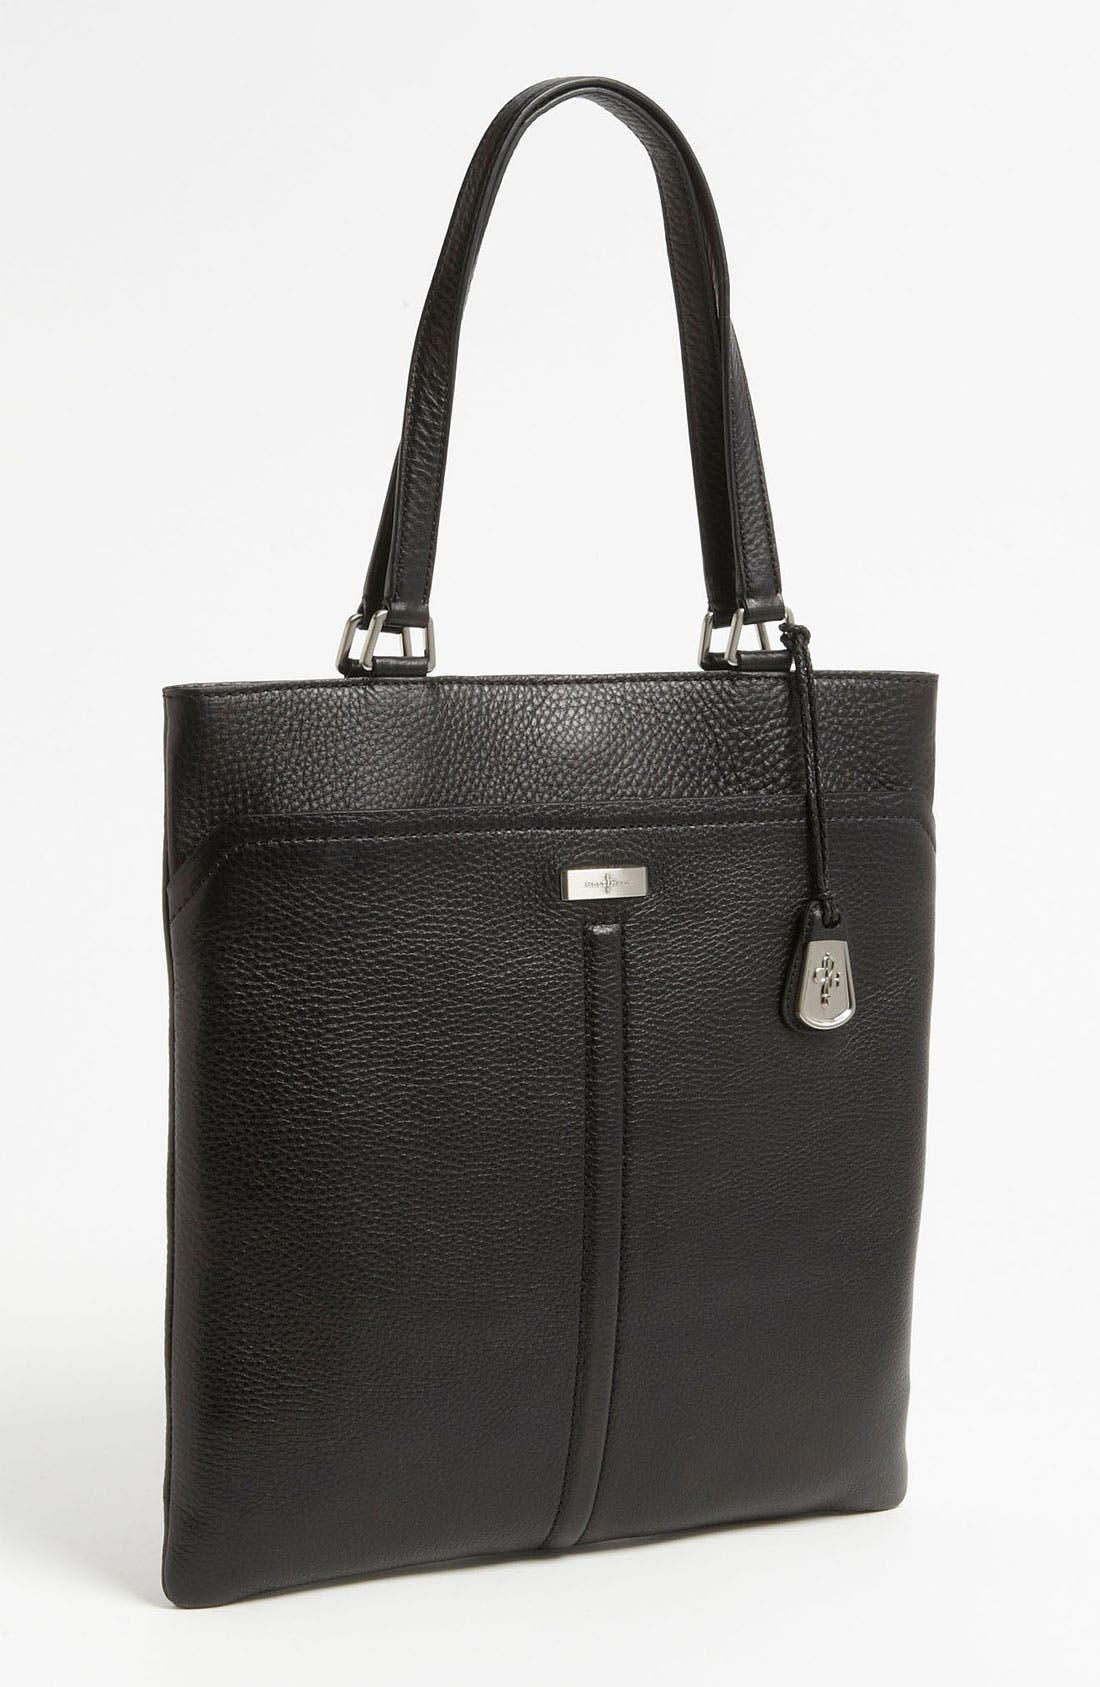 Main Image - Cole Haan 'Village - Marcy' Tote